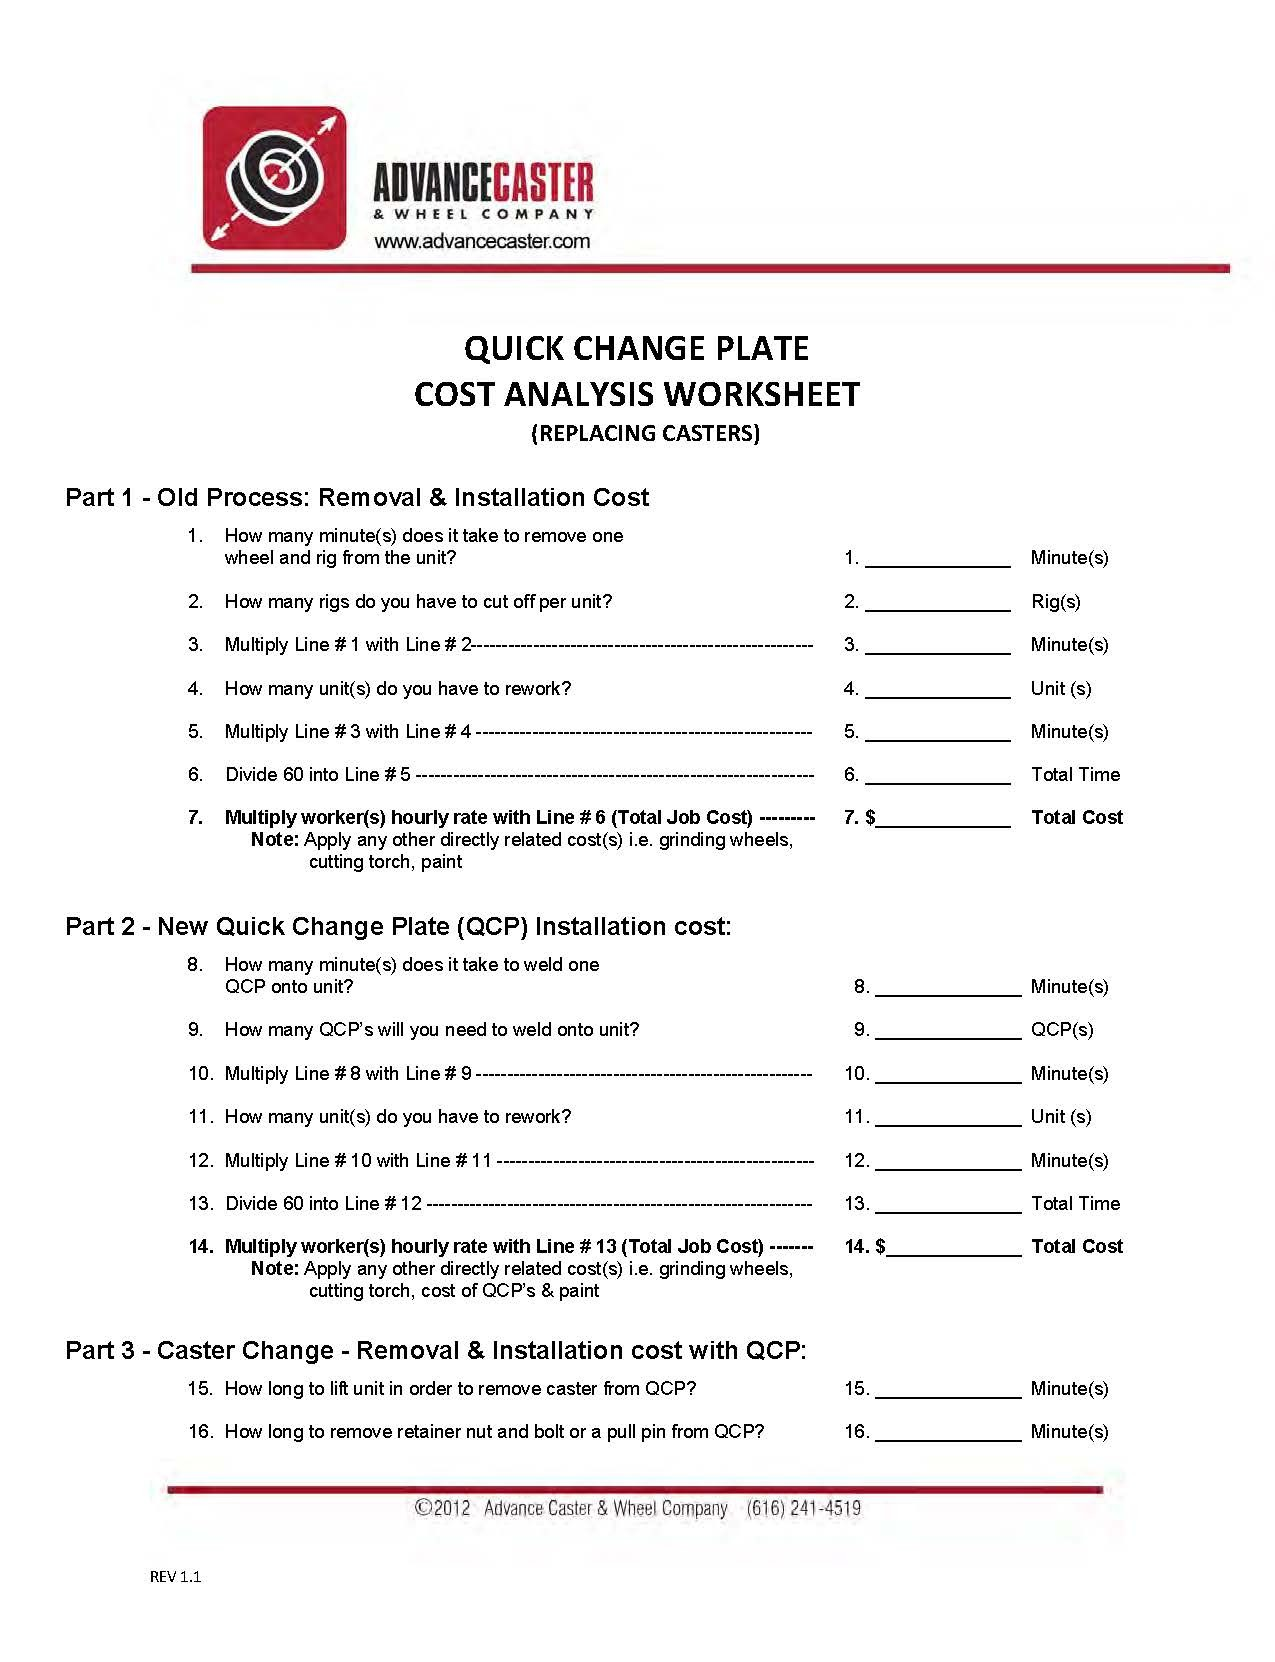 Cost Analysis Worksheet Advance Caster